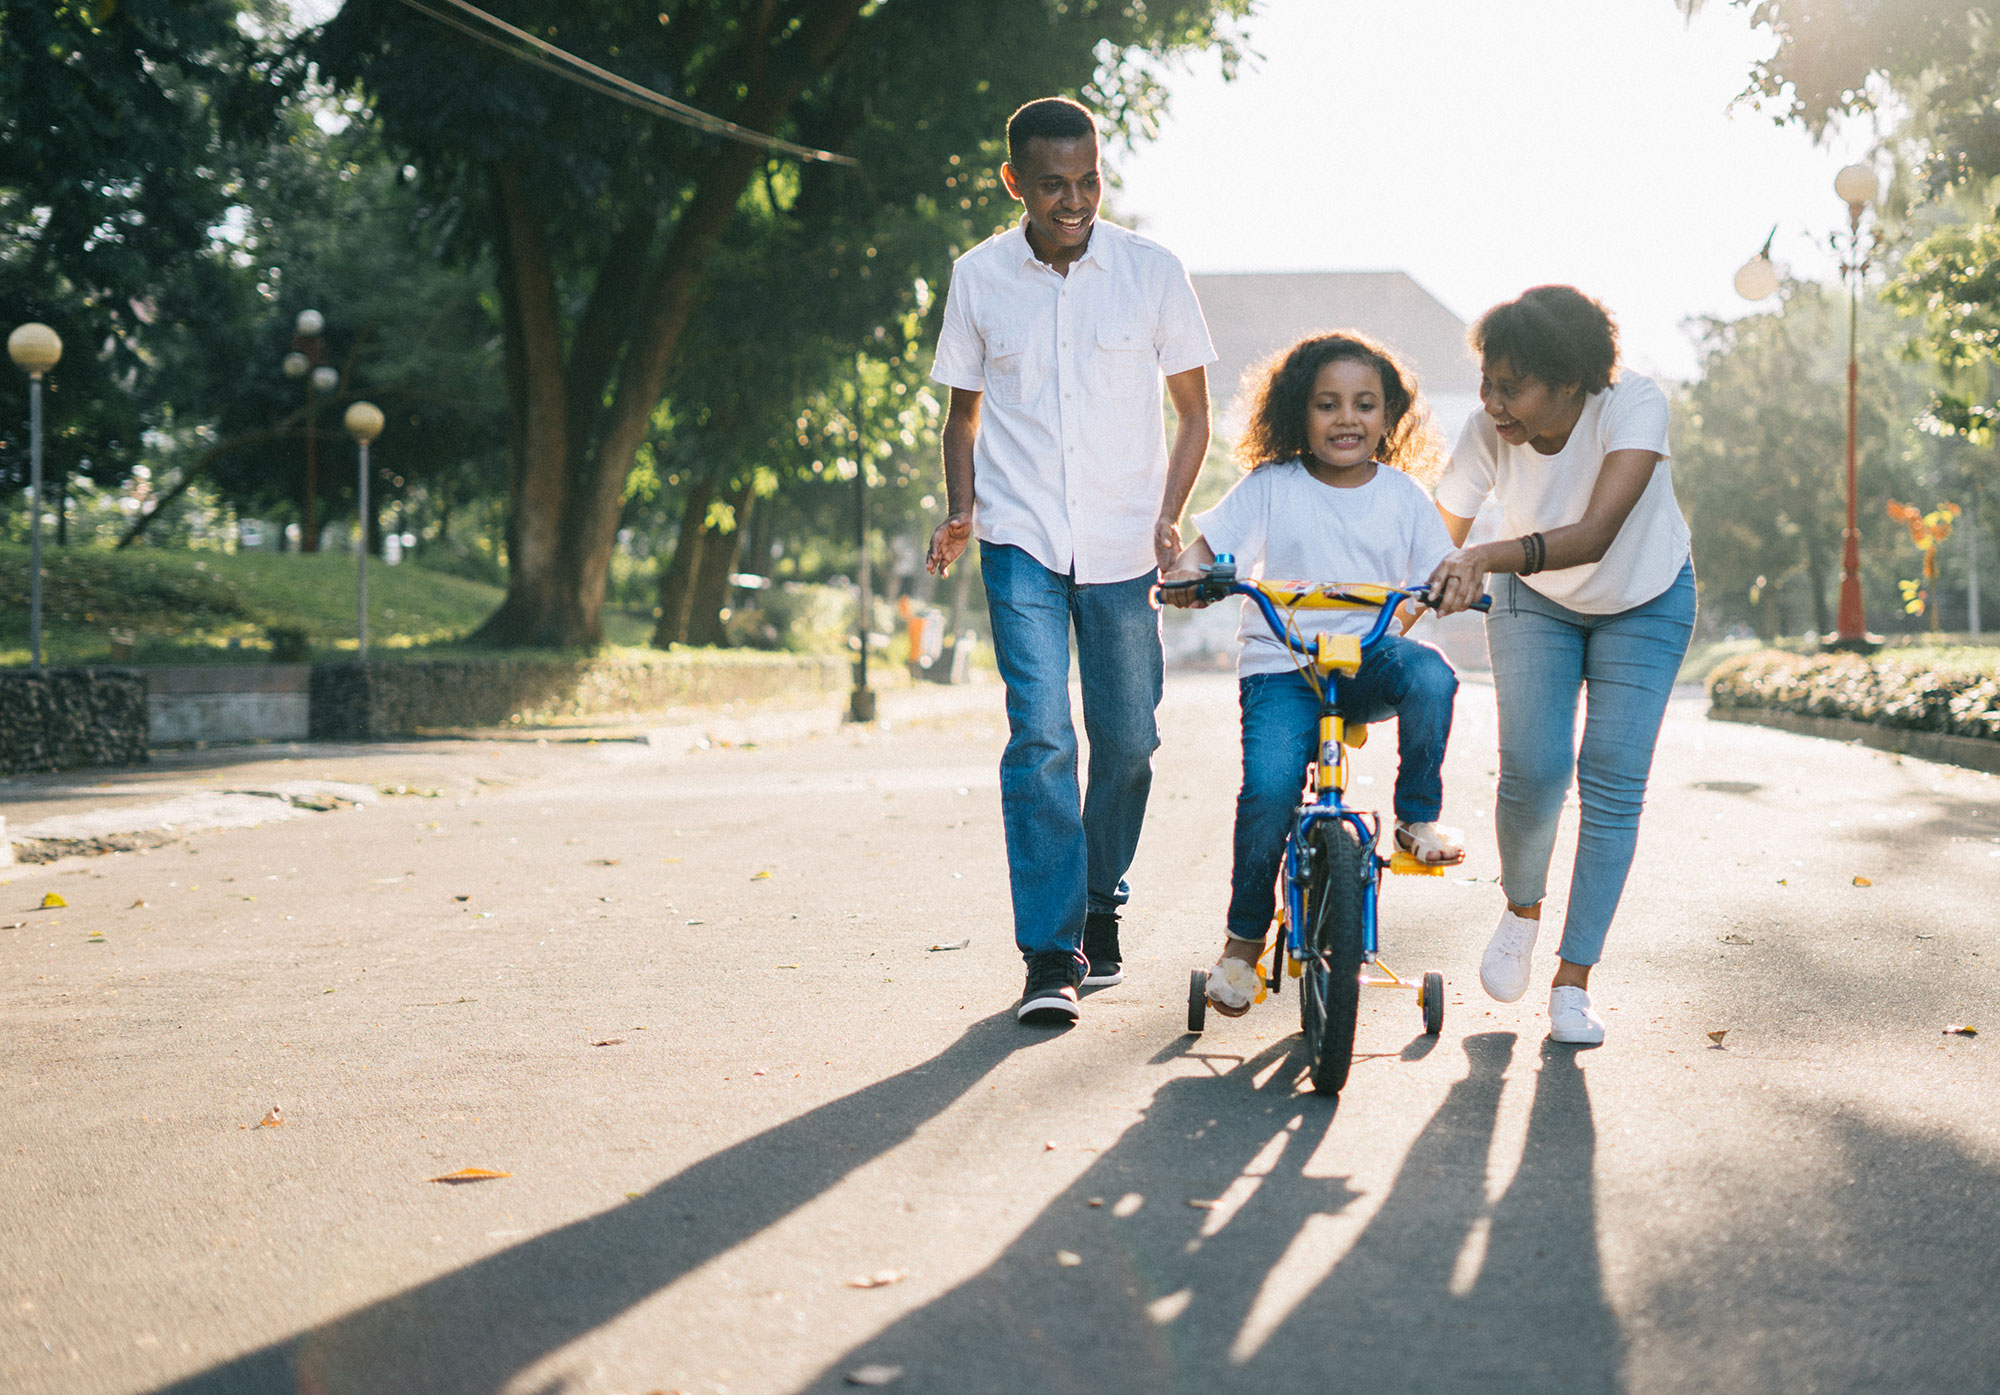 a child riding a bike with a father on one side and mother on the other, all three are wearing jeans and a white shirt